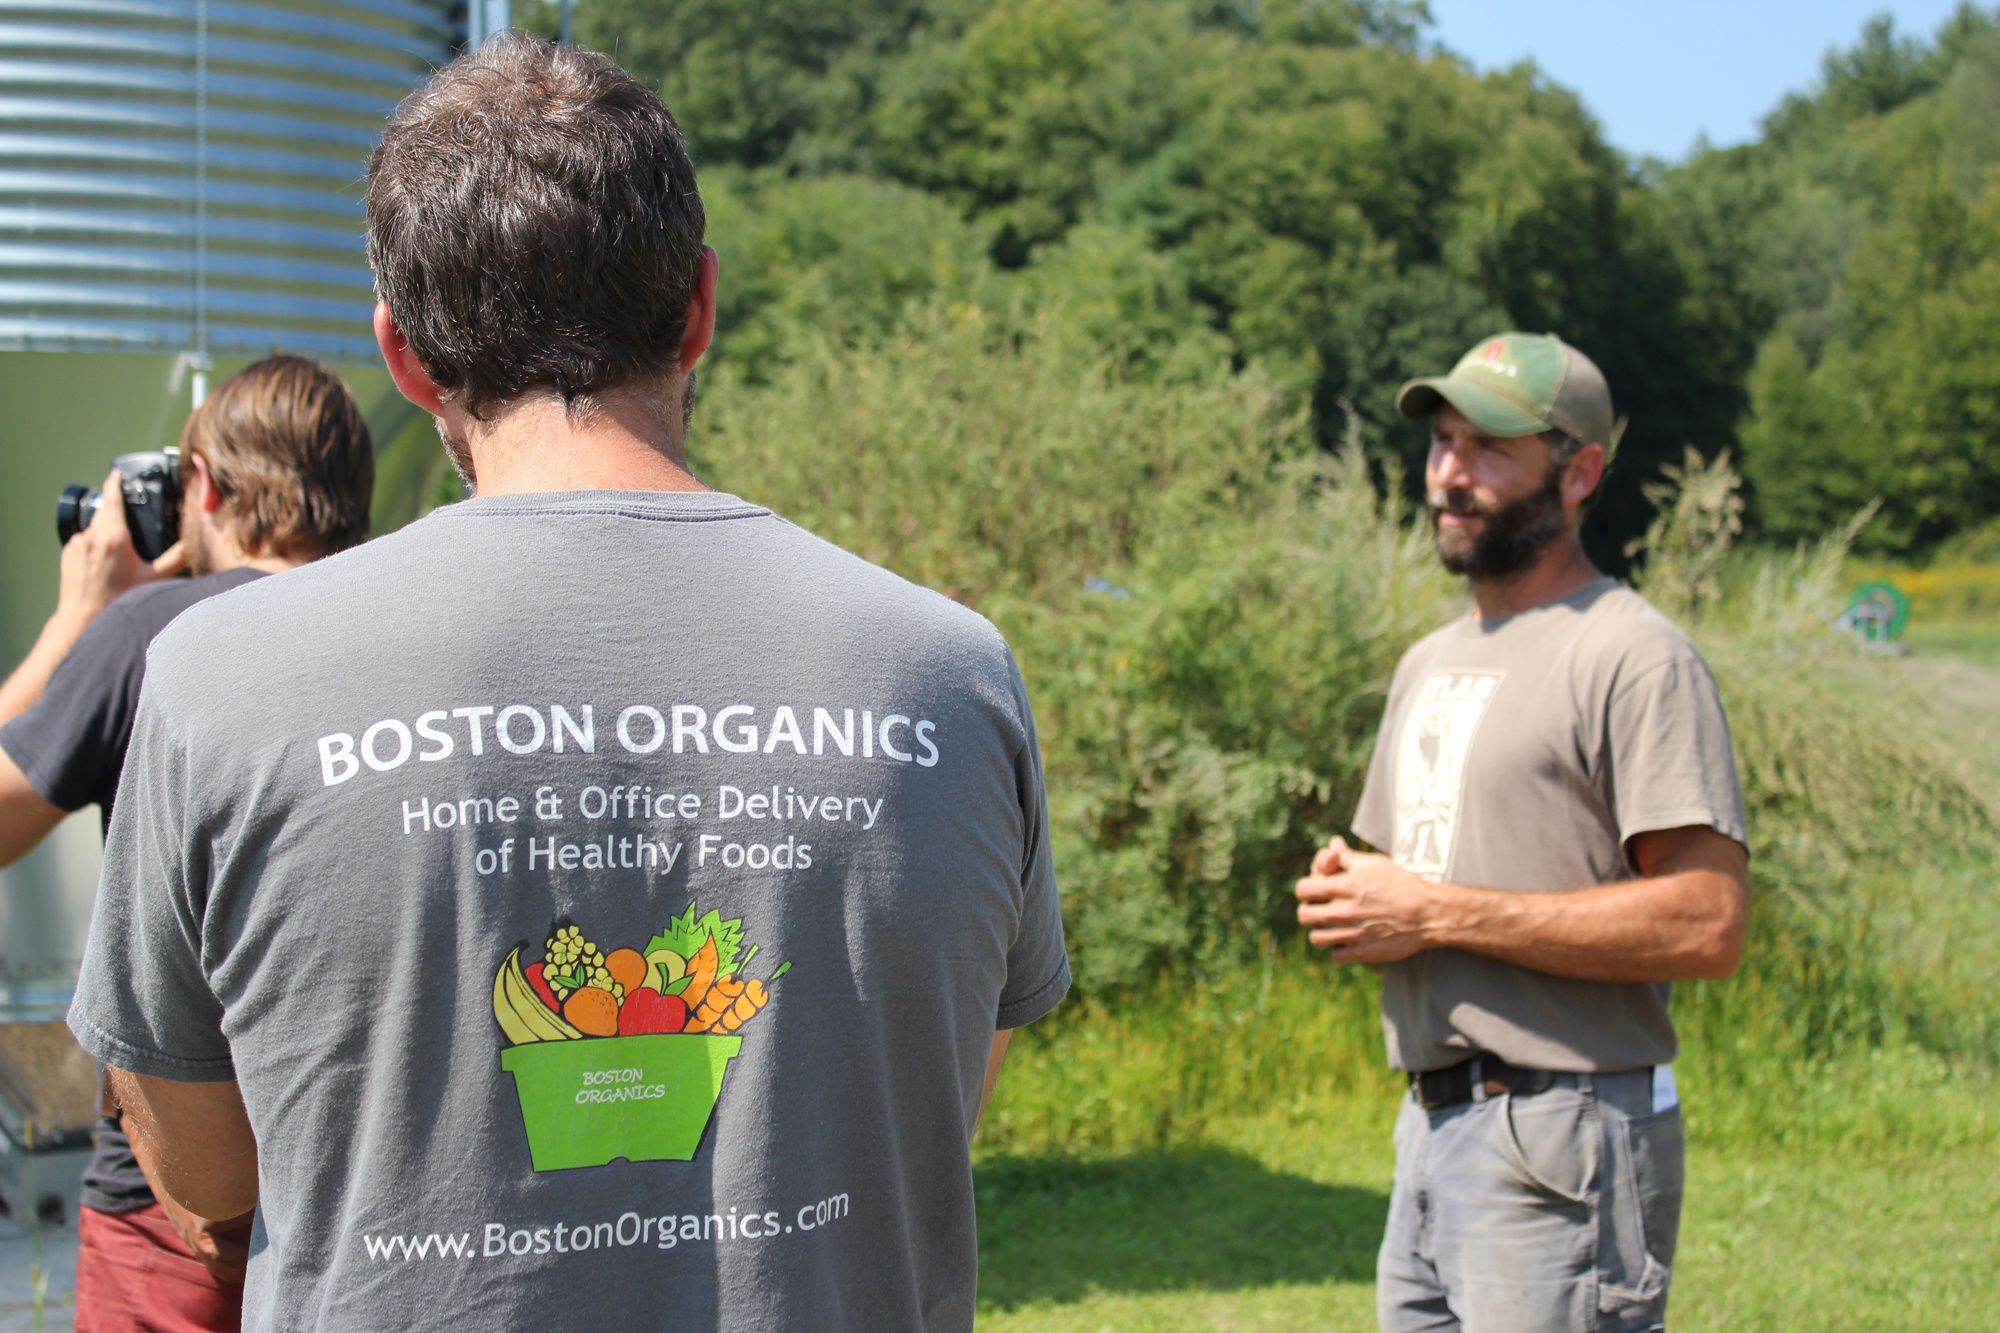 Boston Organics staff pay a visit to Atals Farm.